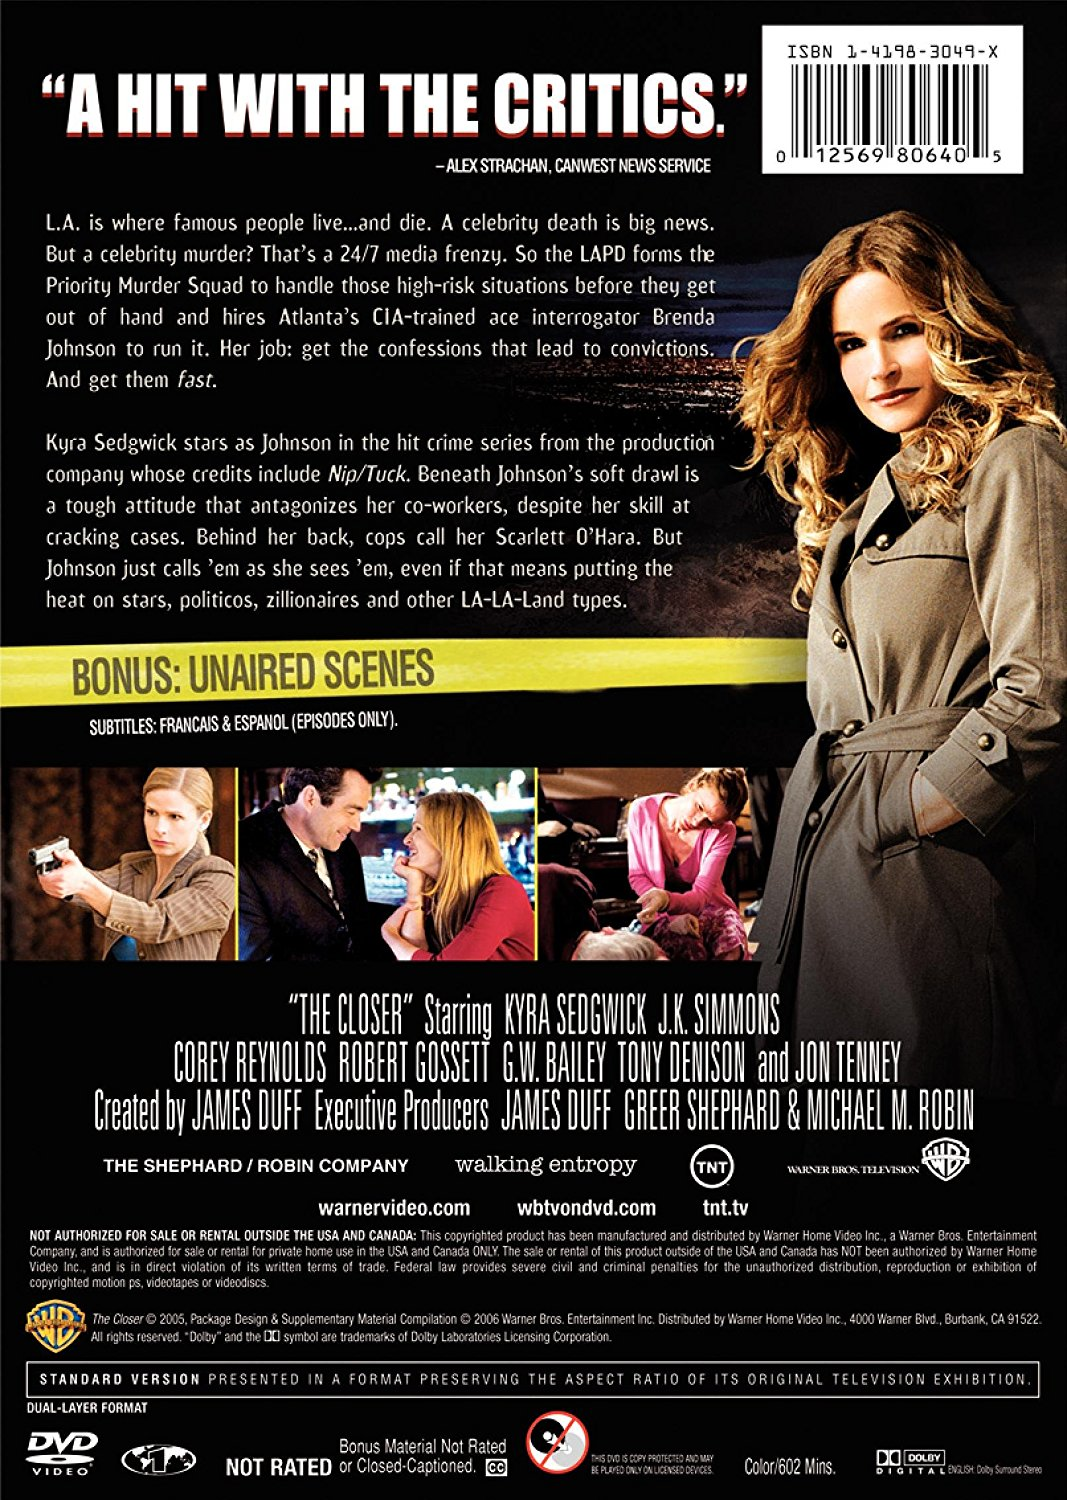 The Closer S1 back.jpg